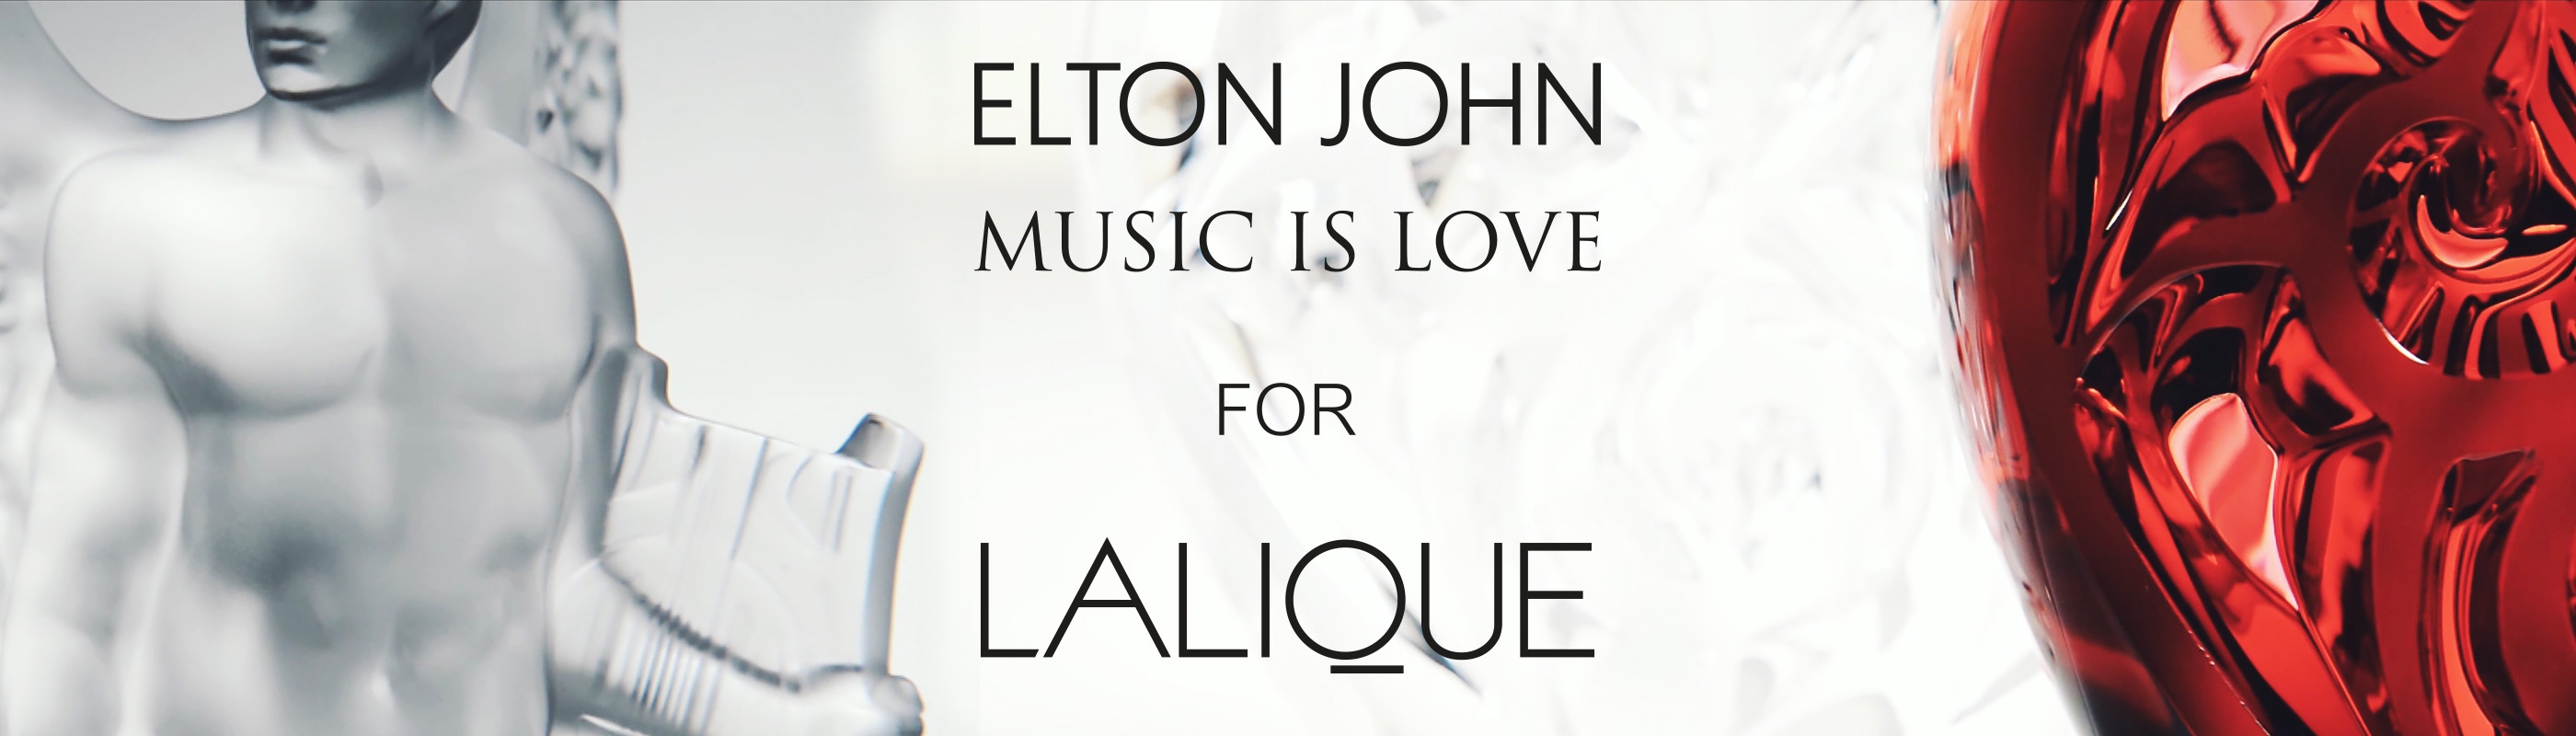 ELTON JOHN MUSIC IS LOVE